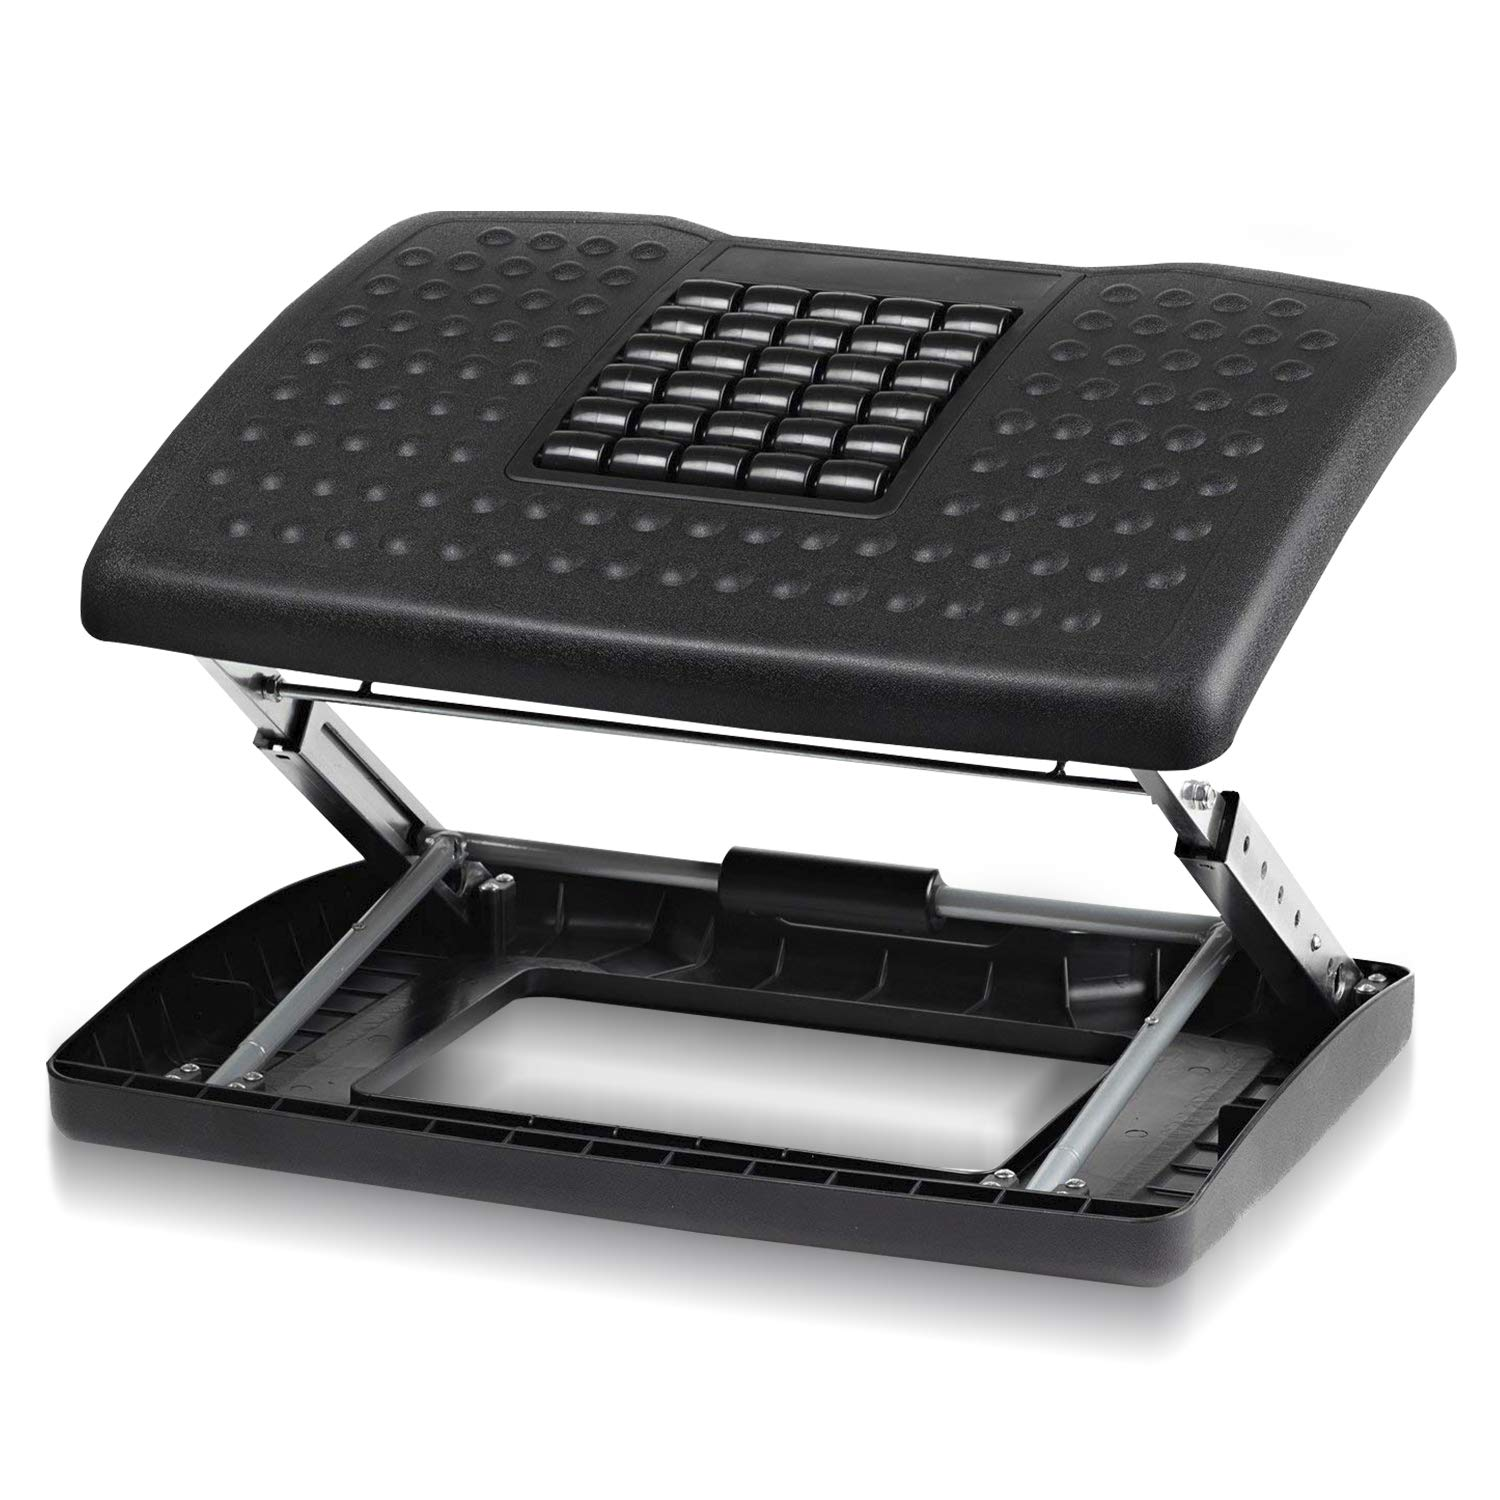 Halter F6068 Adjustable Height Foot Rest with Rollers for Foot Massage - Black by Halter